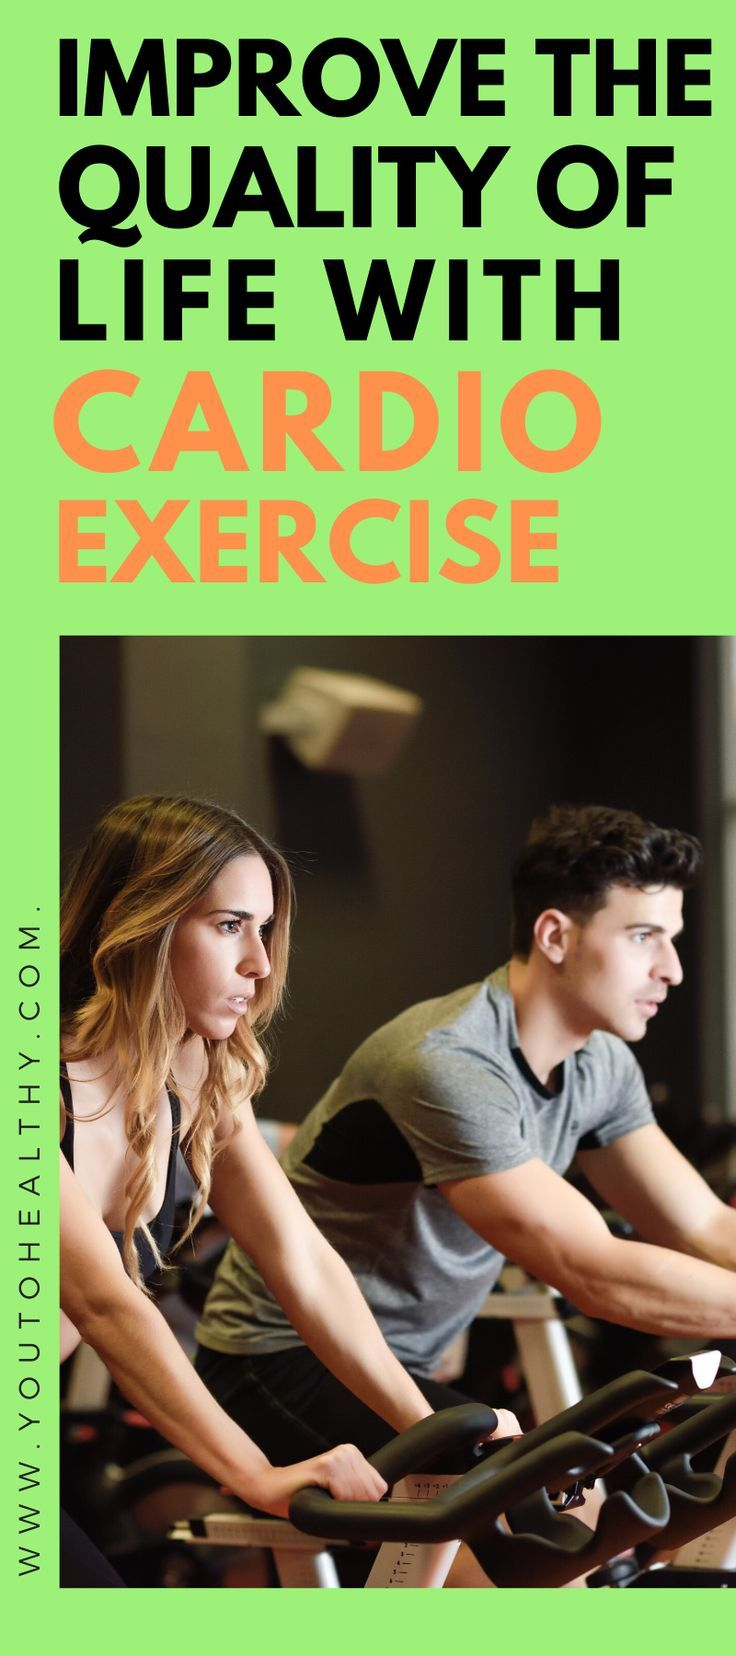 Cardio exercise brings beauty and wellbeing to your body and soul. The health benefits are often fou...